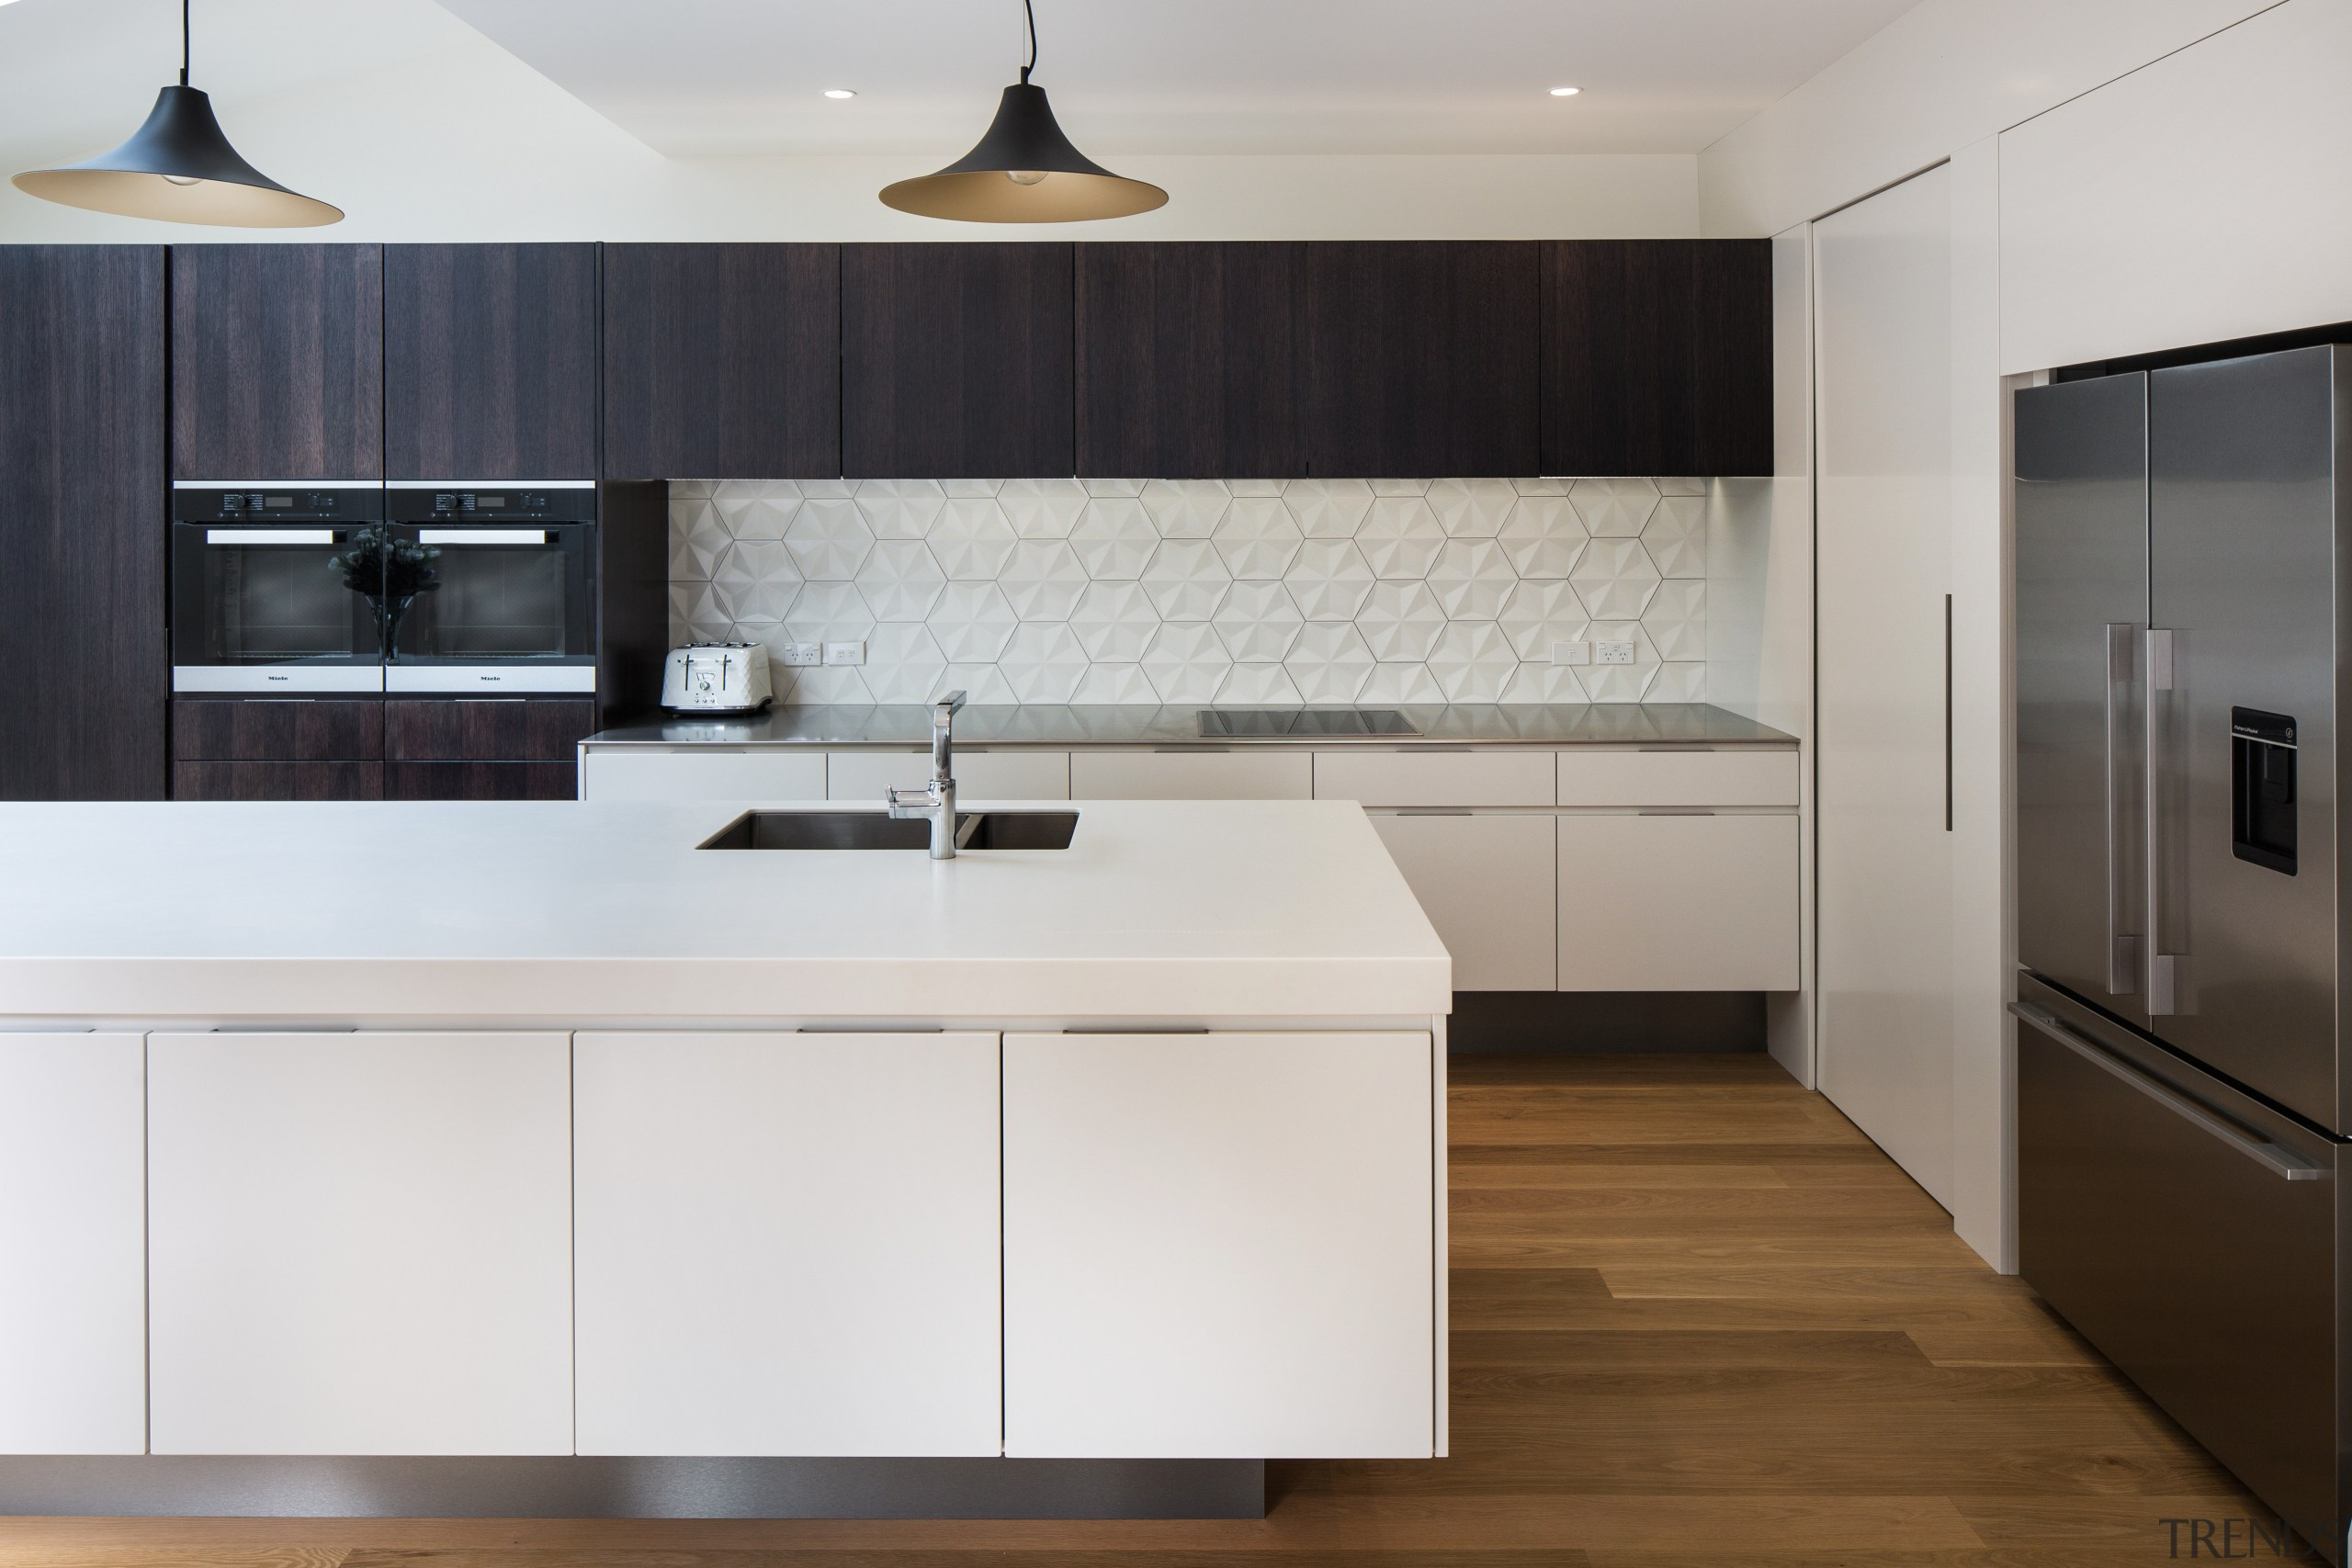 Contrasting the mainly crisp, clean surfaces, the splashback cabinetry, countertop, cuisine classique, floor, home appliance, interior design, kitchen, product design, room, wood flooring, gray